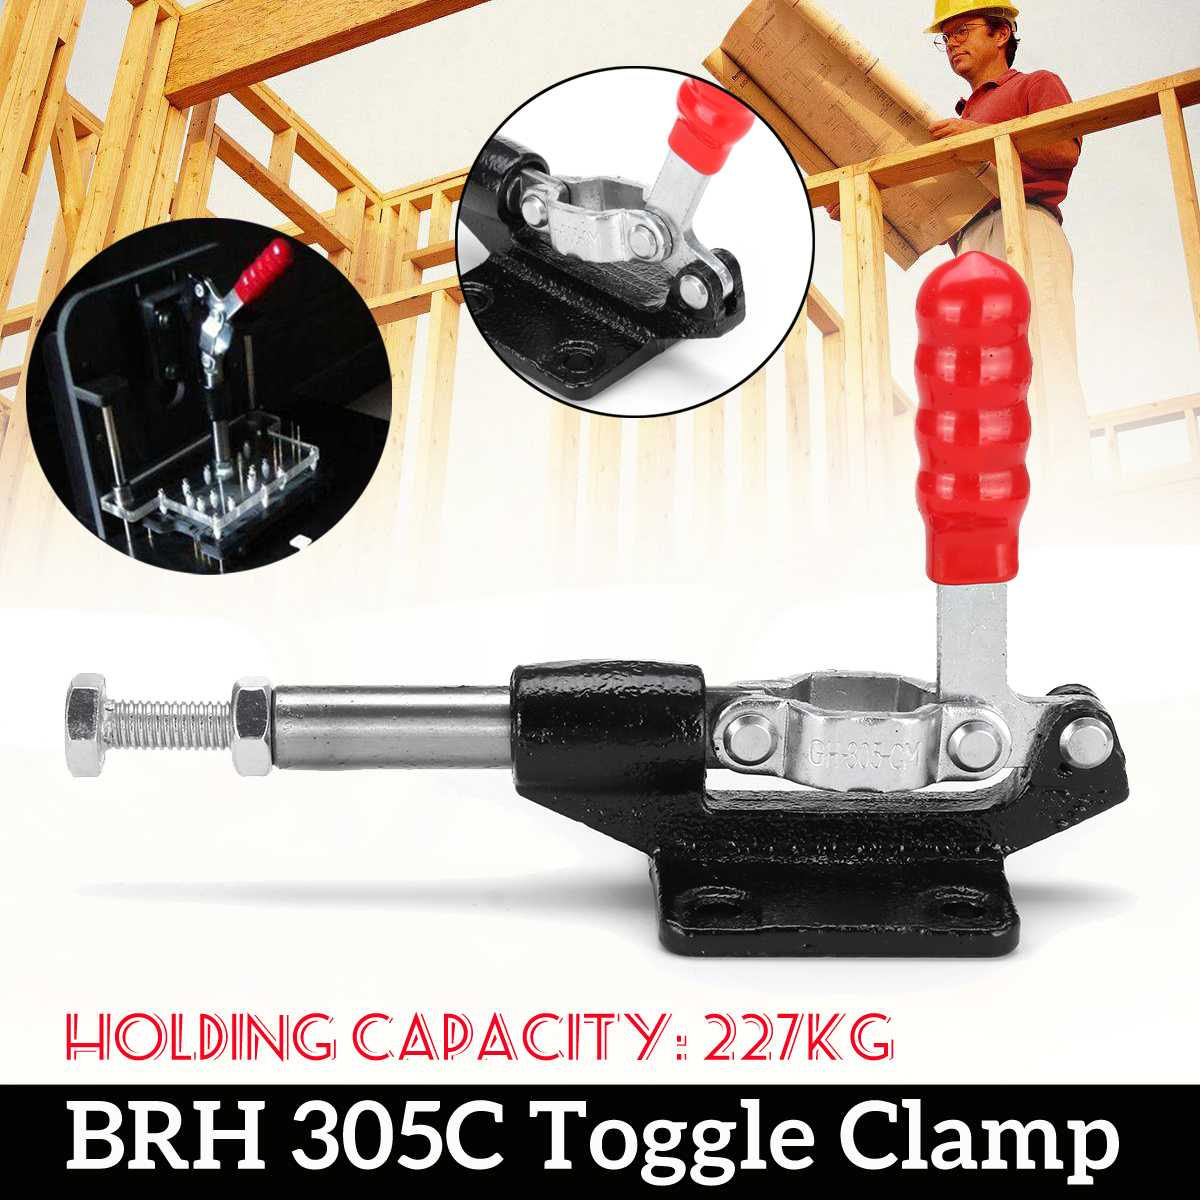 GH305C Toggle Clamp BRH 500 Lbs 32mm Plunger 227Kg Holding Capacity Push Pull Toggle Clamp